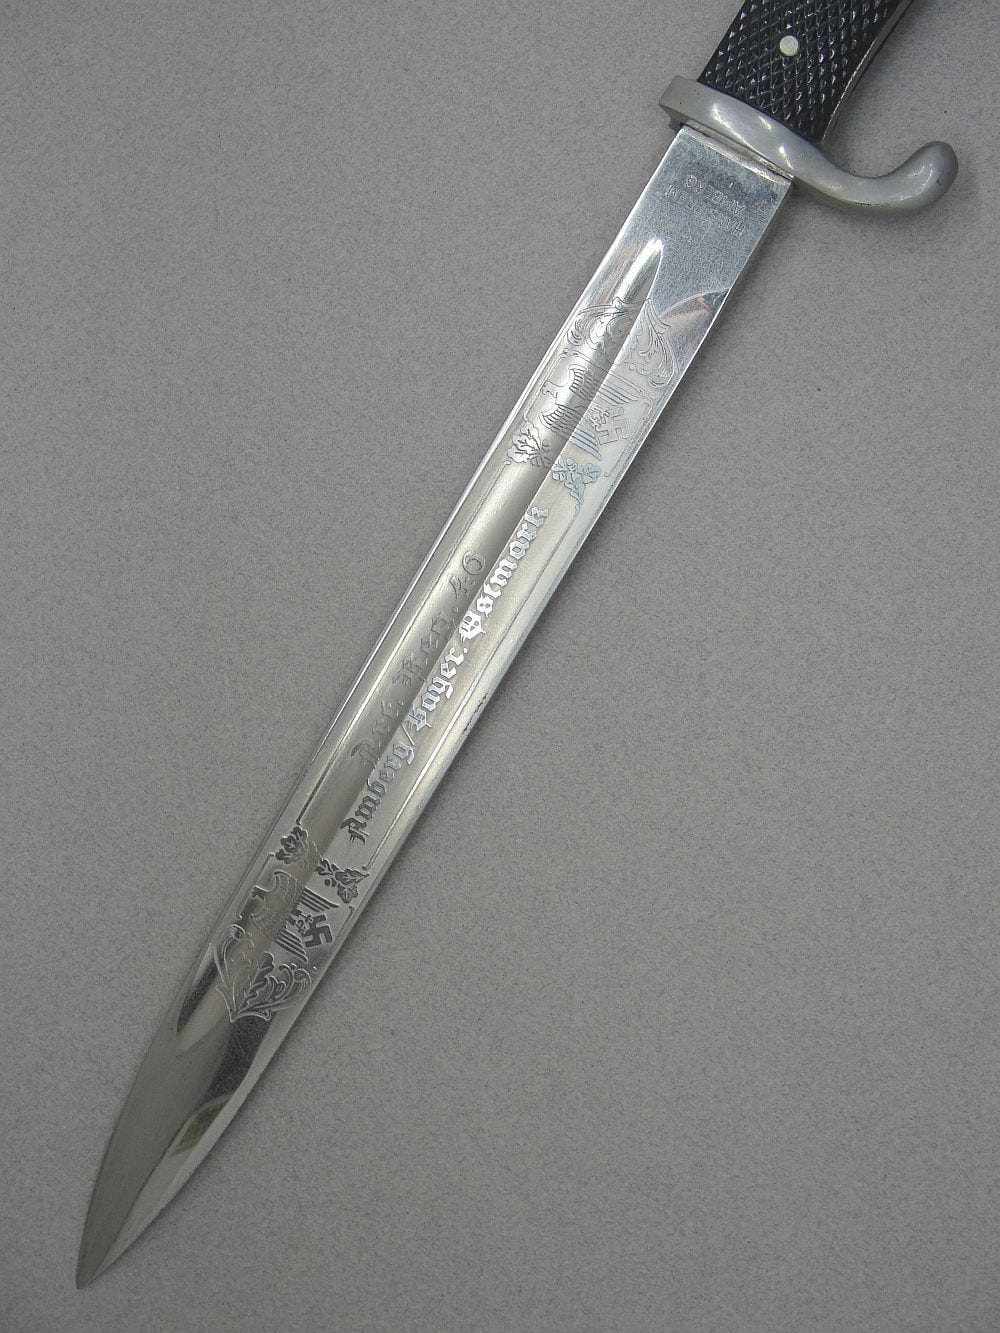 Long Double Etched Dress Bayonet Artillery Regiment 46 by F.W. Höller with Retailer's Mark